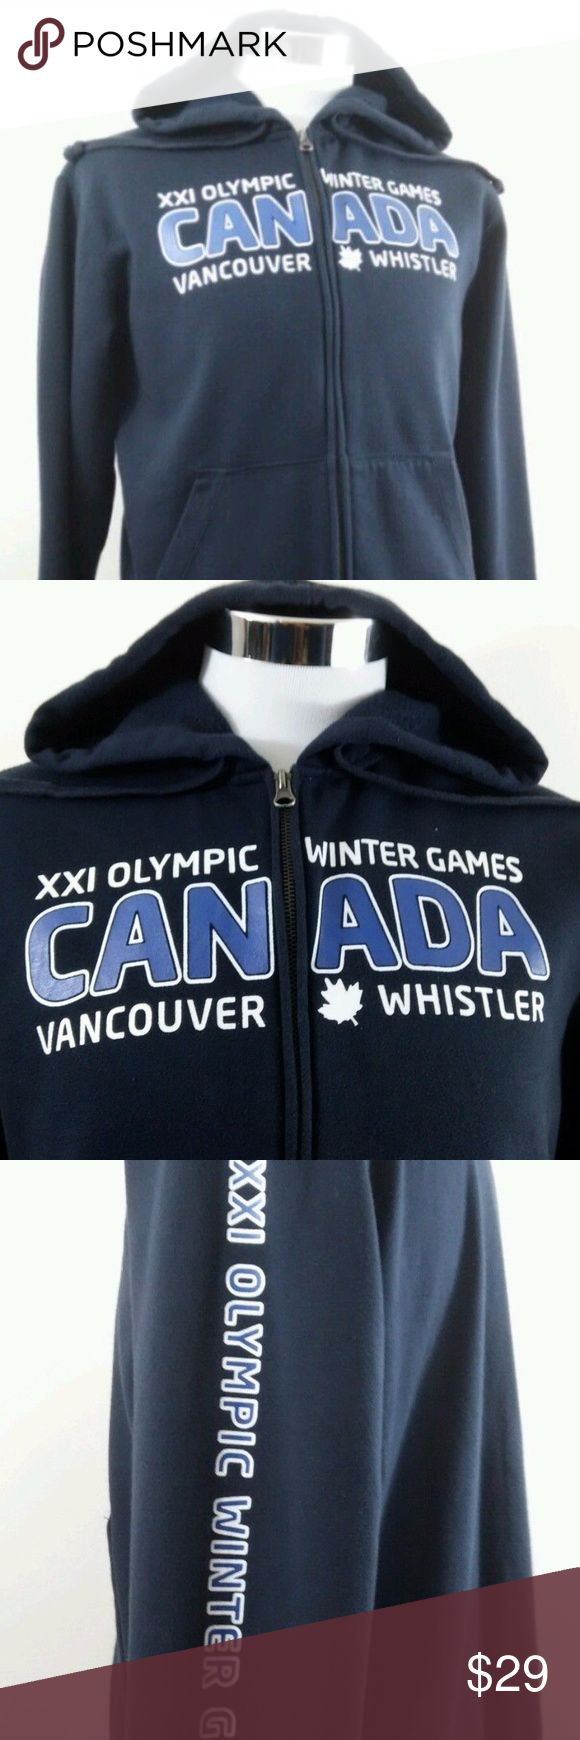 Men's 2010 Canada Winter Olympic Games Hoodie Up for sale very good authentic 2010 Vancouver Olympics navy blue hoodie.   This is an Original, Authentic, and Very Dark Navy Blue size small/P hoodie style sweatshirt. This Shirt is uni-sex made to fit both men and women. No major flaws noticed. Seems to run large. Each pocket has a zipper for security of contents.   MEASUREMENTS:  Height: 25.5 in  Arm Length: 24.5 in Chest: 18.0 in Elevate Sweaters Zip Up